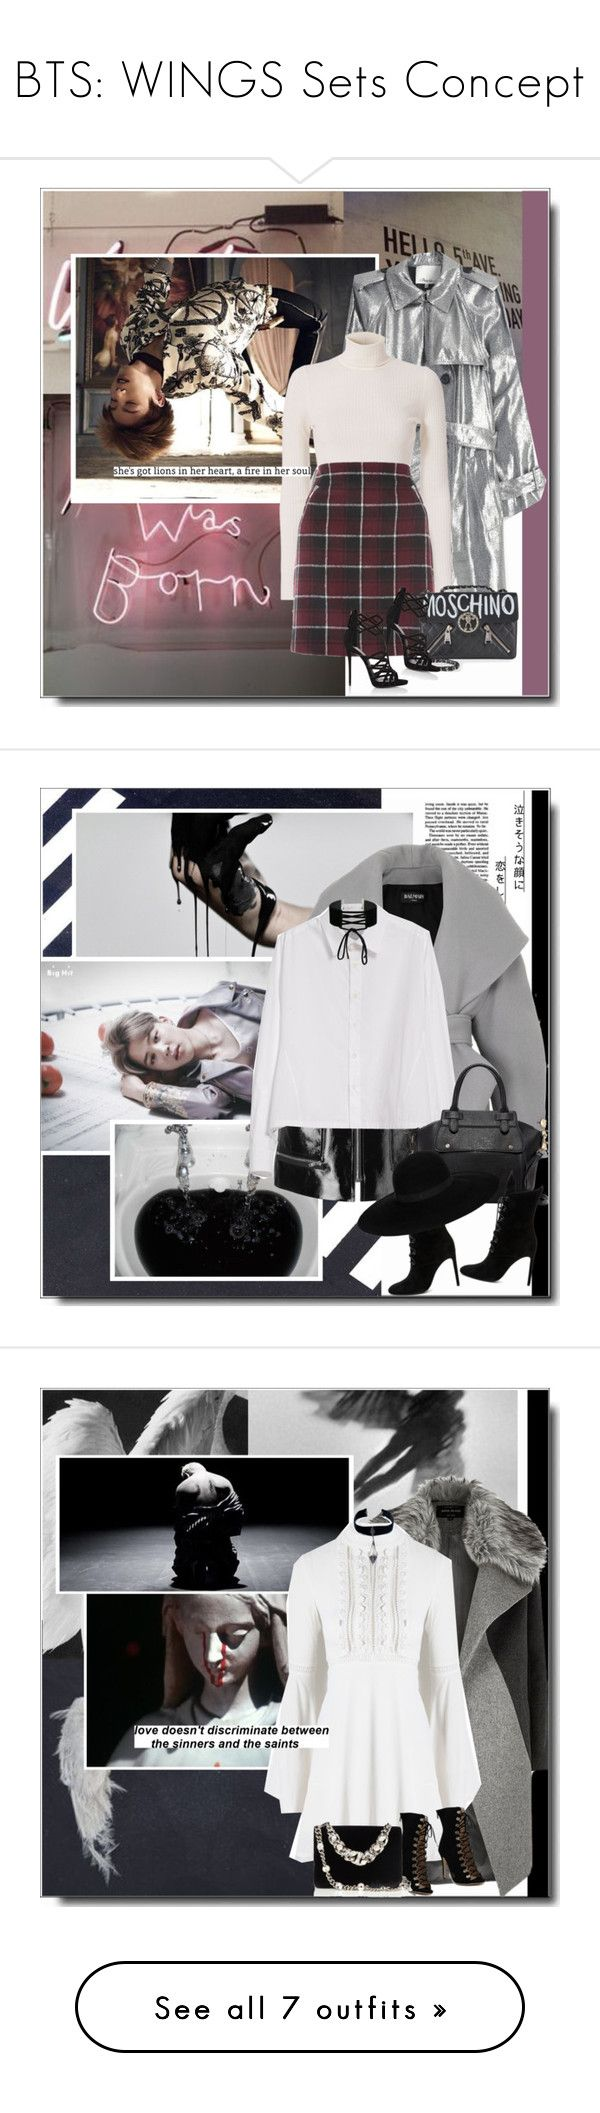 """""""BTS: WINGS Sets Concept"""" by itshandra ❤ liked on Polyvore featuring ban.do, 3.1 Phillip Lim, A.L.C., Moschino, Giuseppe Zanotti, fallsweaters, Balmain, Isabel Marant, Y's by Yohji Yamamoto and Kendall + Kylie"""